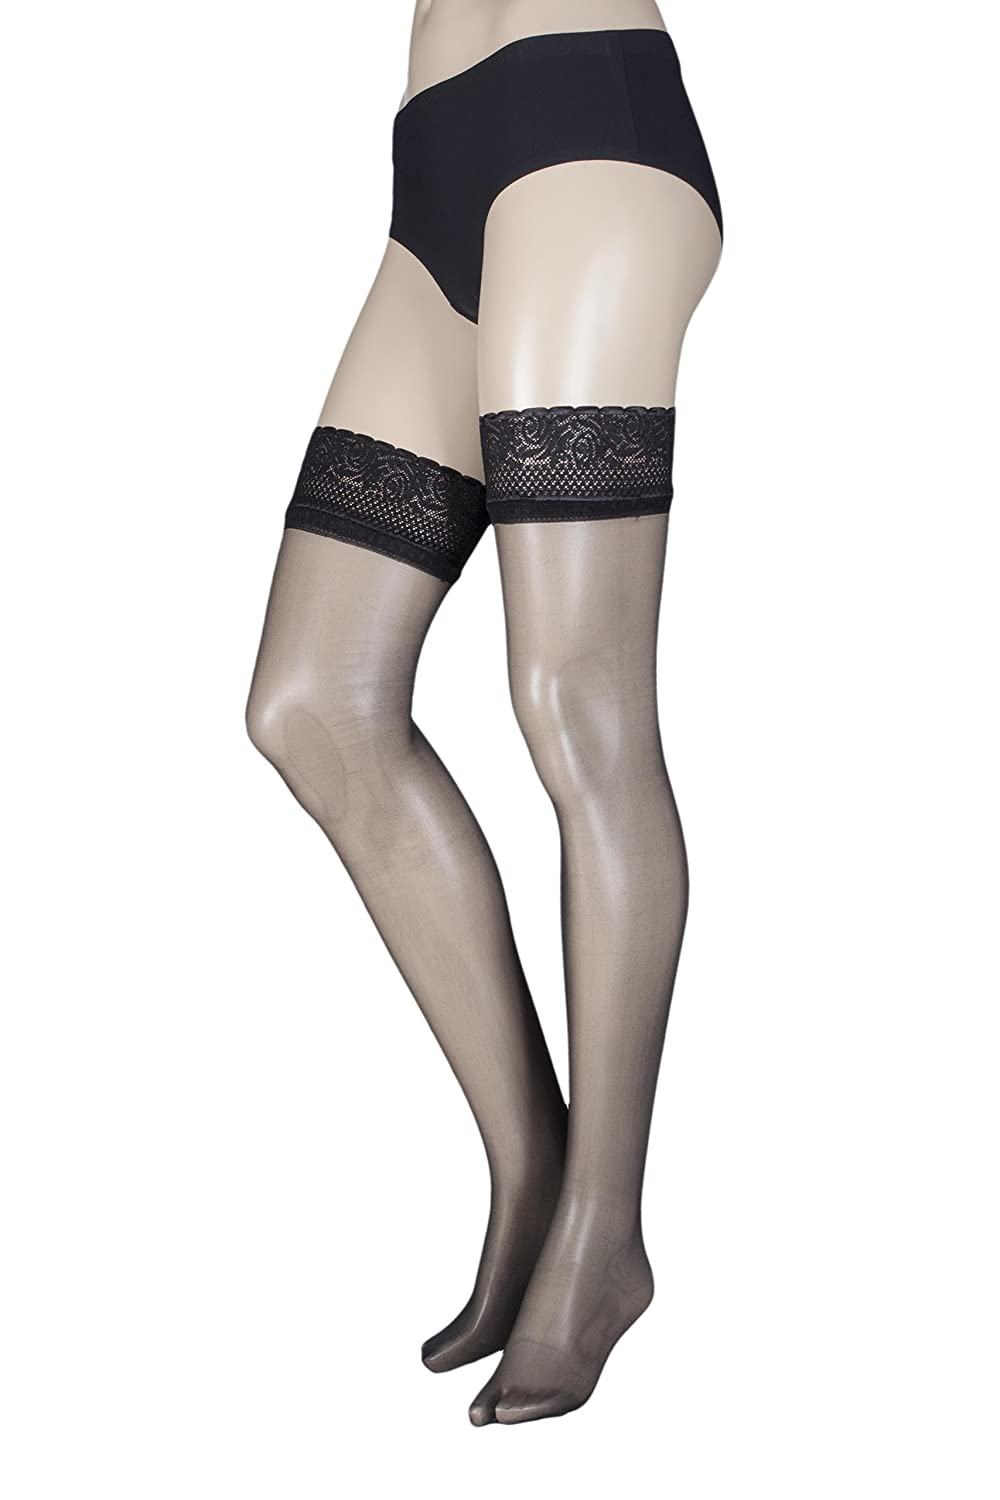 New Aristoc Women's 1 Pair 10 Denier Ultra Shine Hold Ups with Silk Finish Medium/Large Black